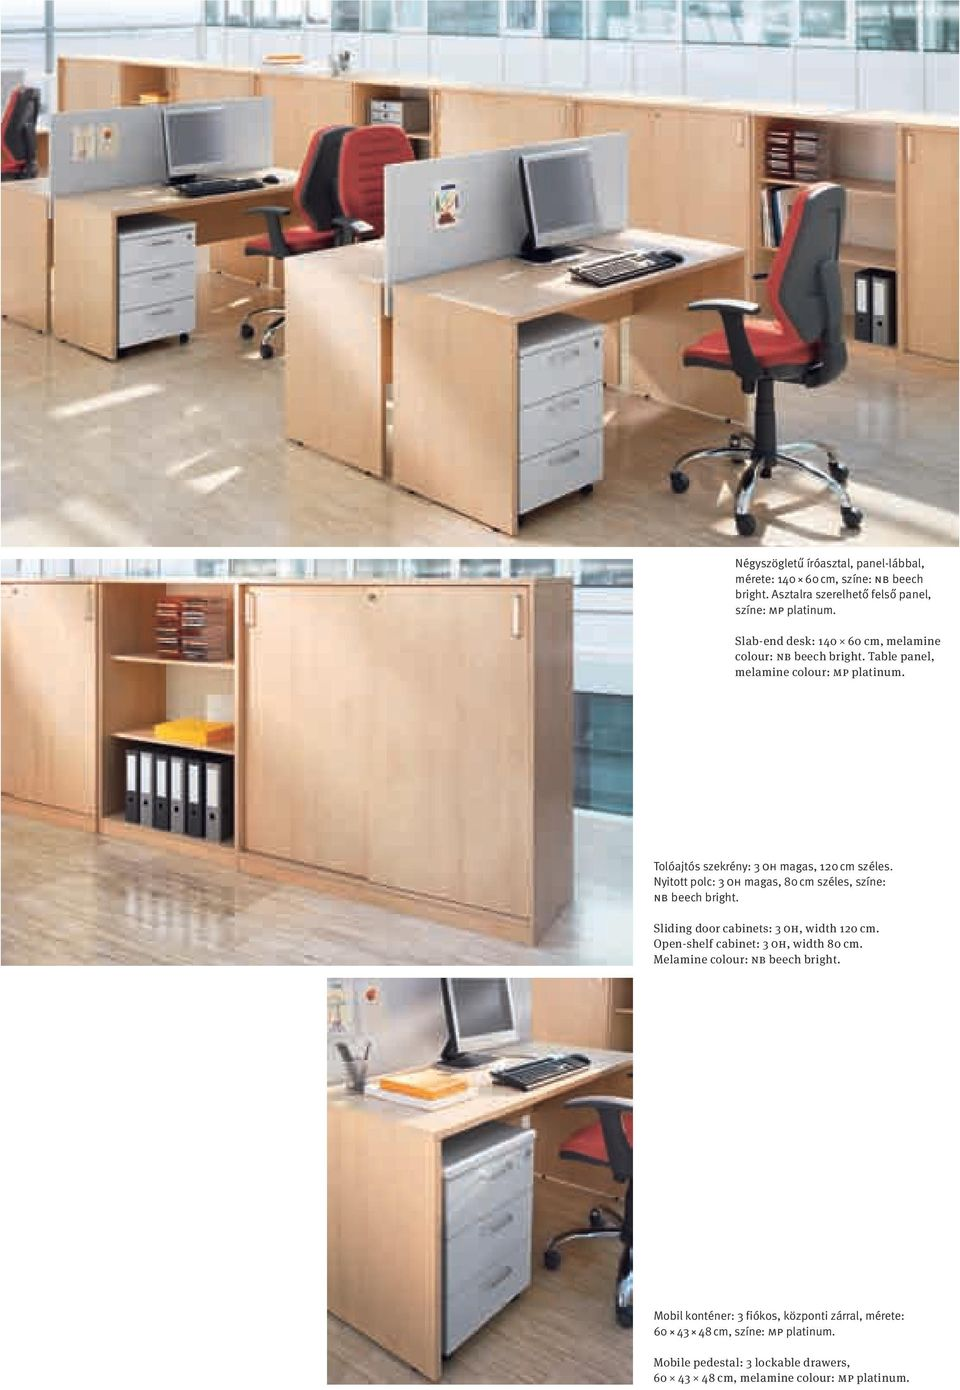 Nyitott polc: 3 OH magas, cm széles, színe: NB beech bright. Sliding door cabinets: 3 OH, width 120 cm. Open-shelf cabinet: 3 OH, width cm.